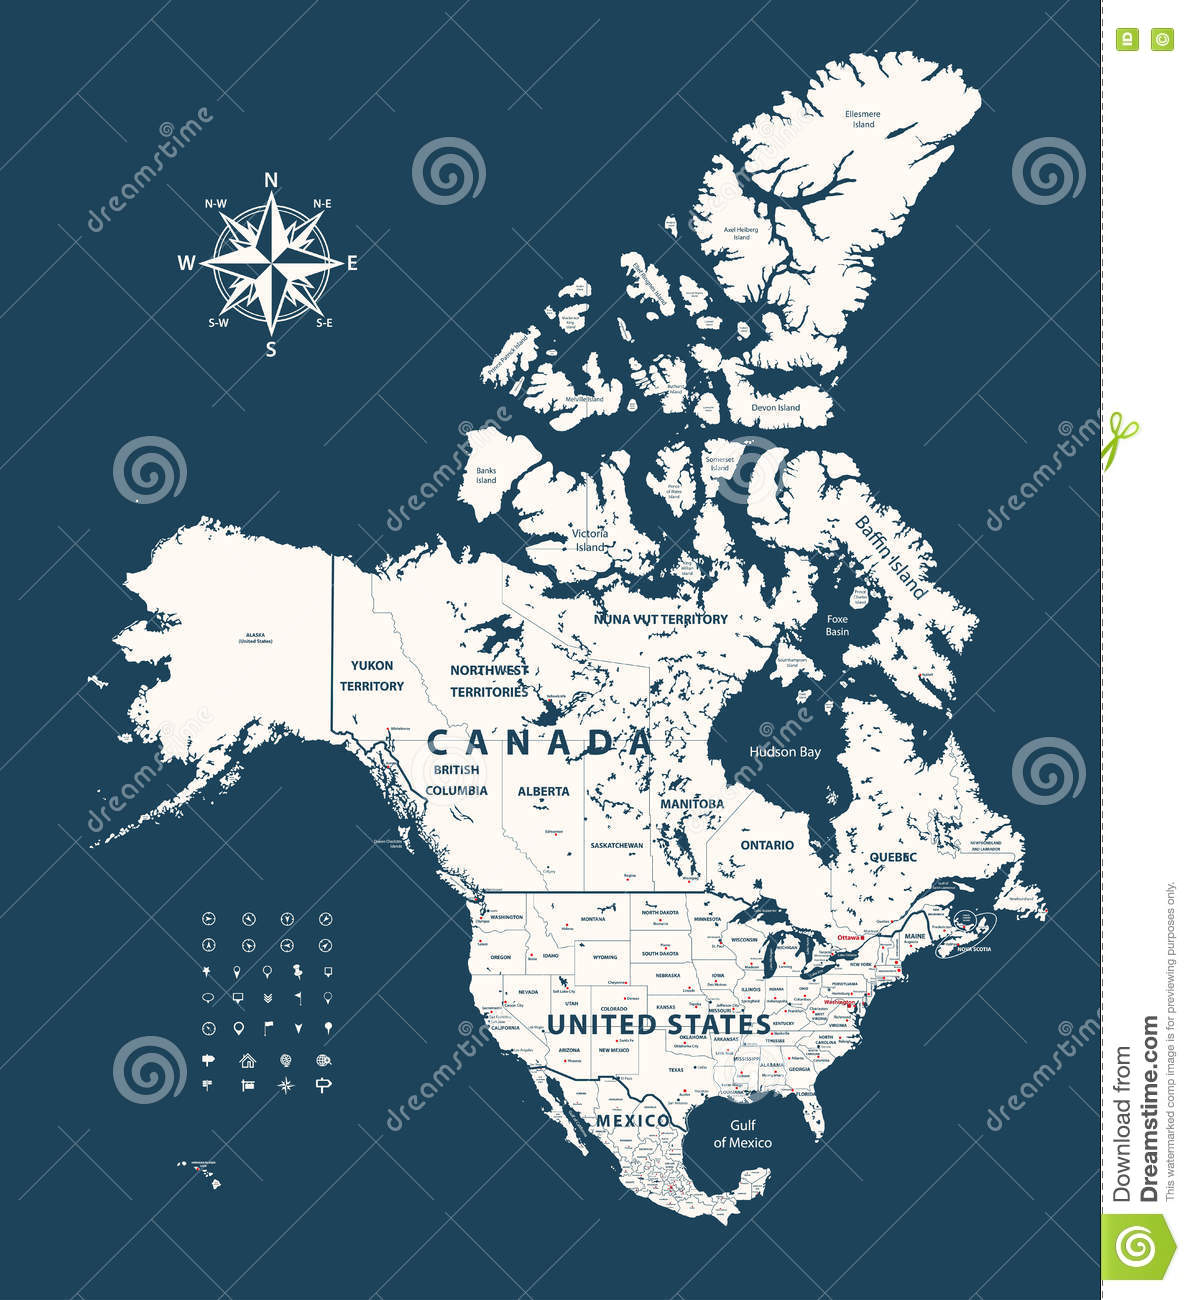 Canada United States And Mexico Map With States Borders On Dark